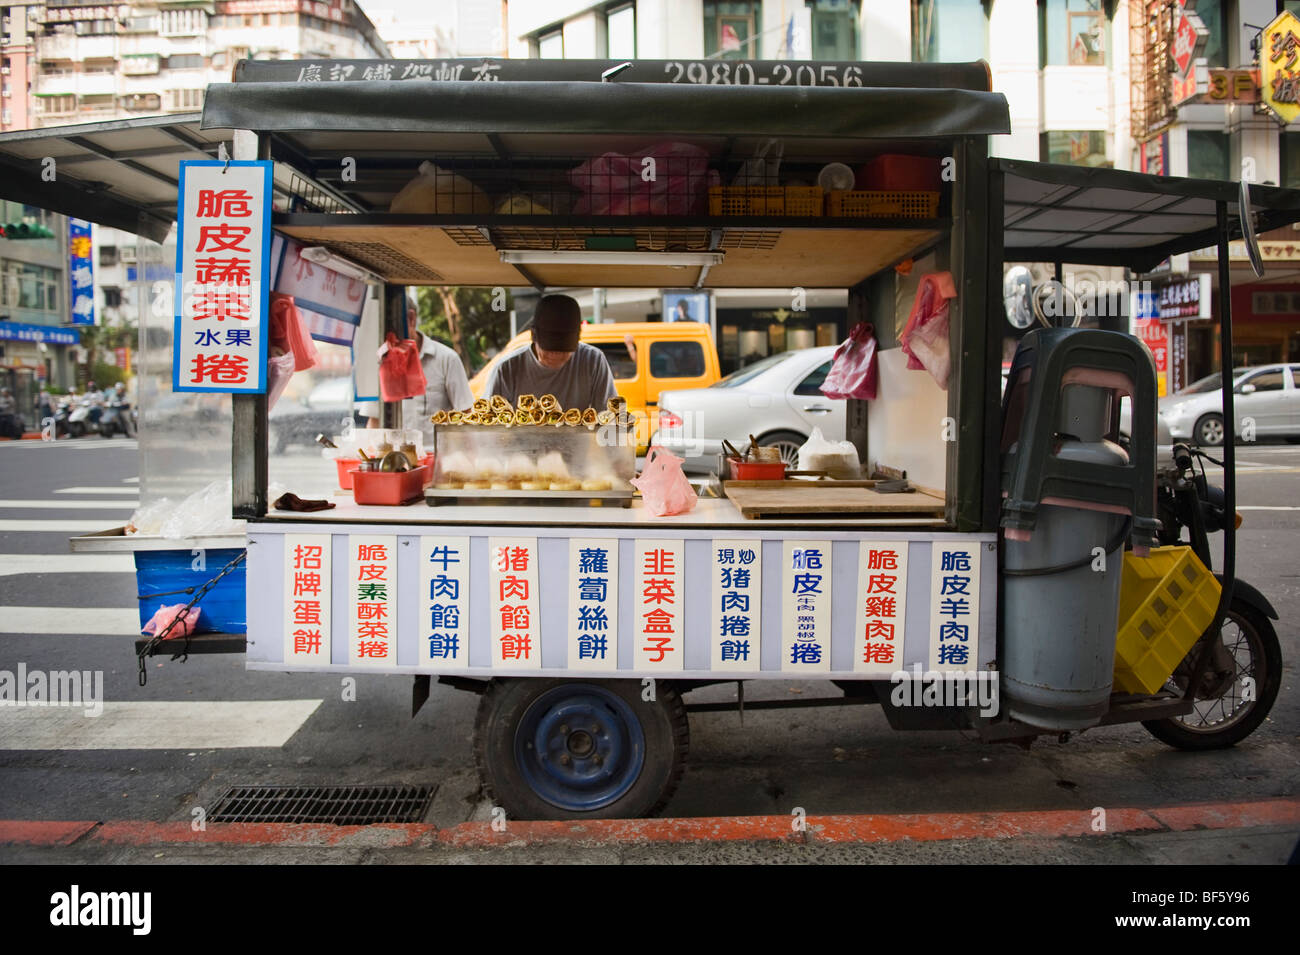 A street-side mobile food stand in Taipei, Taiwan where freshly made